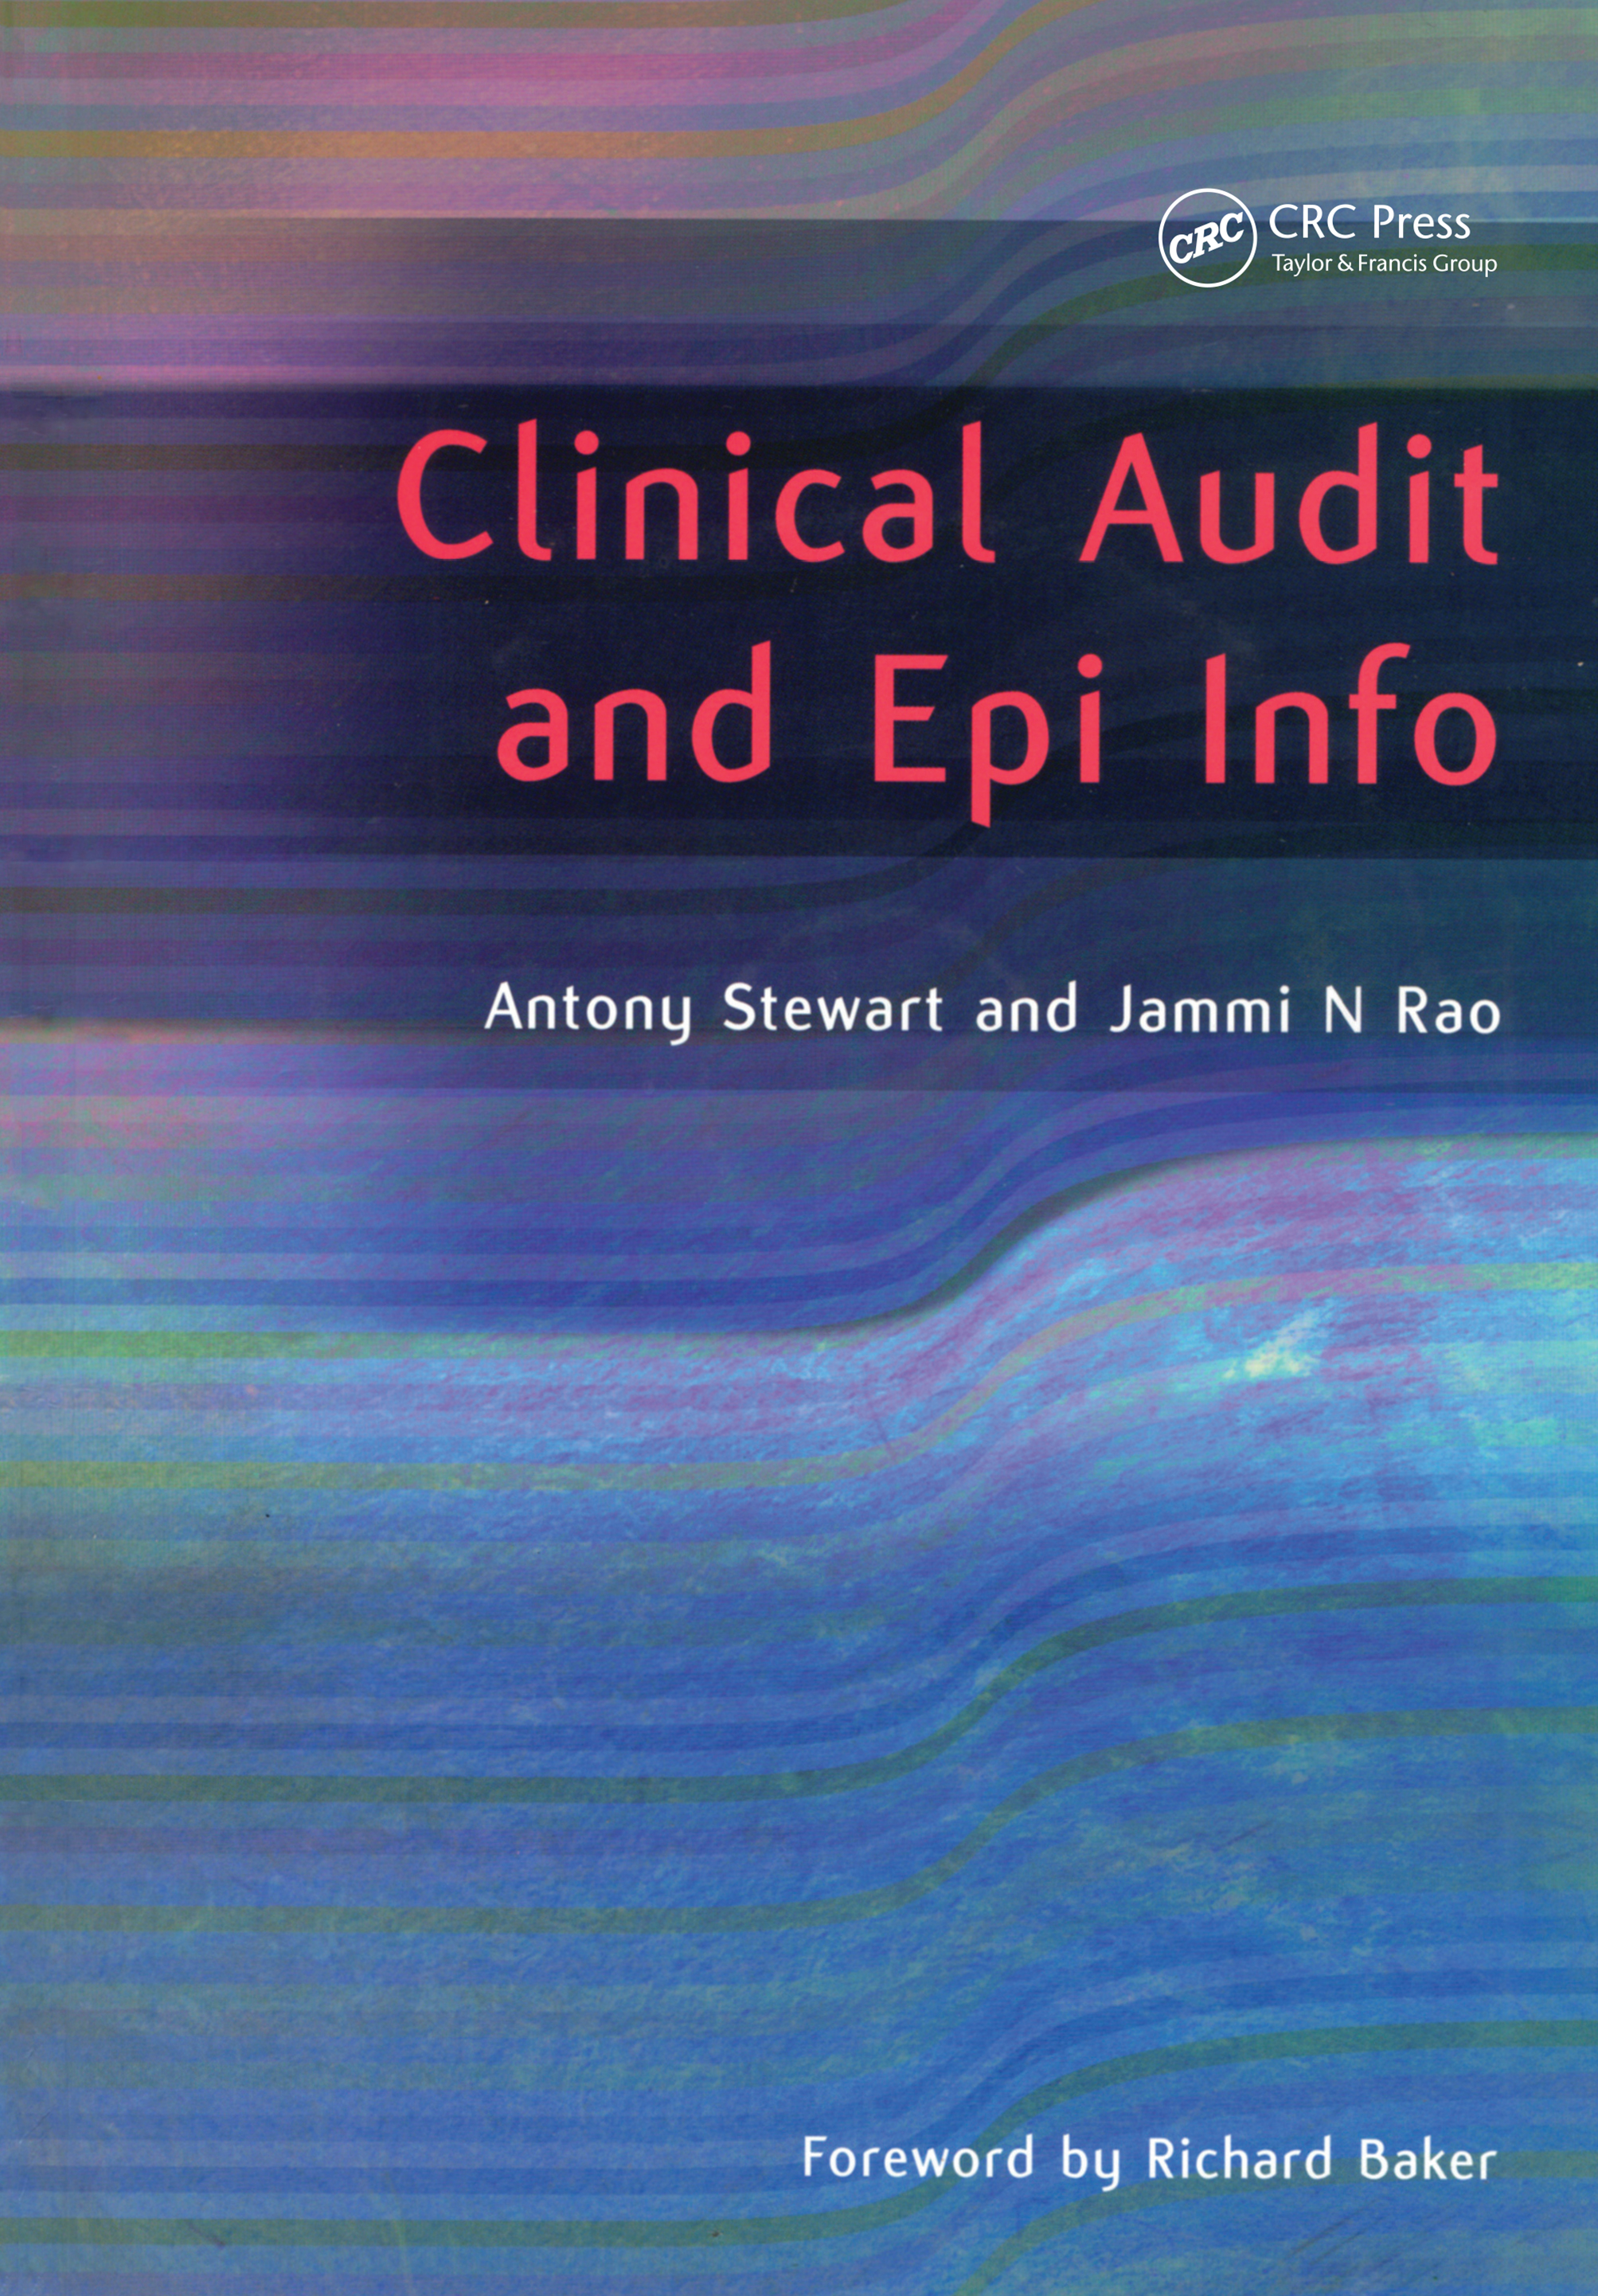 Clinical Audit and Epi Info - 4265041c2b214ce , Clinical-Audit-and-Epi-Info-13679530 , Clinical Audit and Epi Info , Array , 13679530 , MEDICAL , 209555293